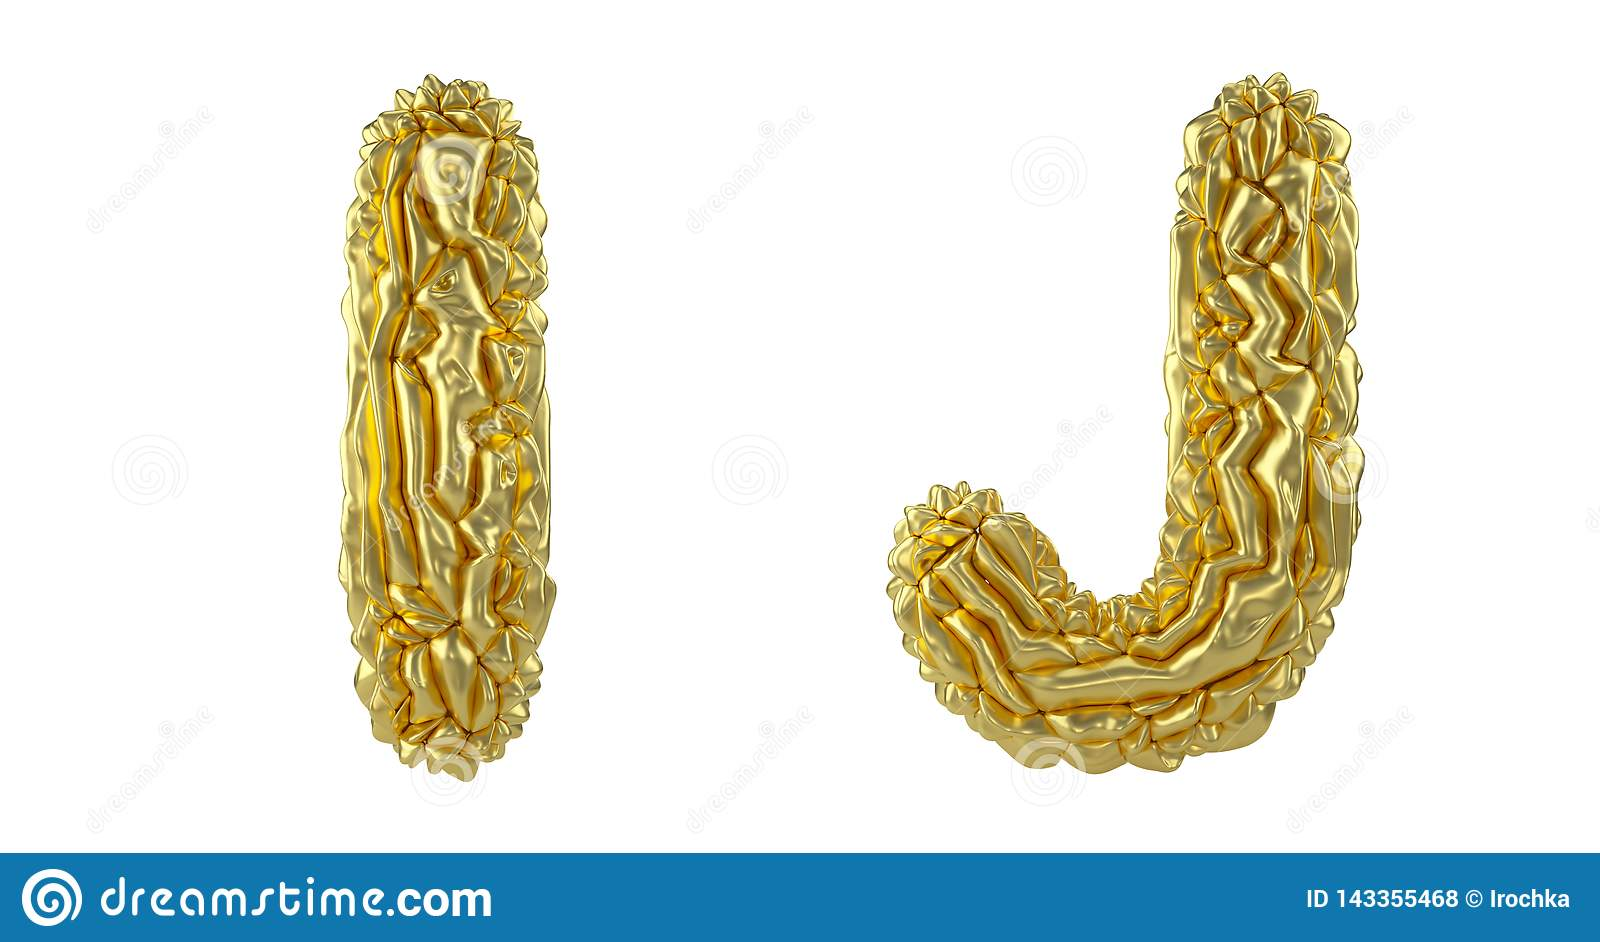 Realistic 3D letters set I, J made of crumpled foil. Collection symbols of crumpled gold foil isolated on white